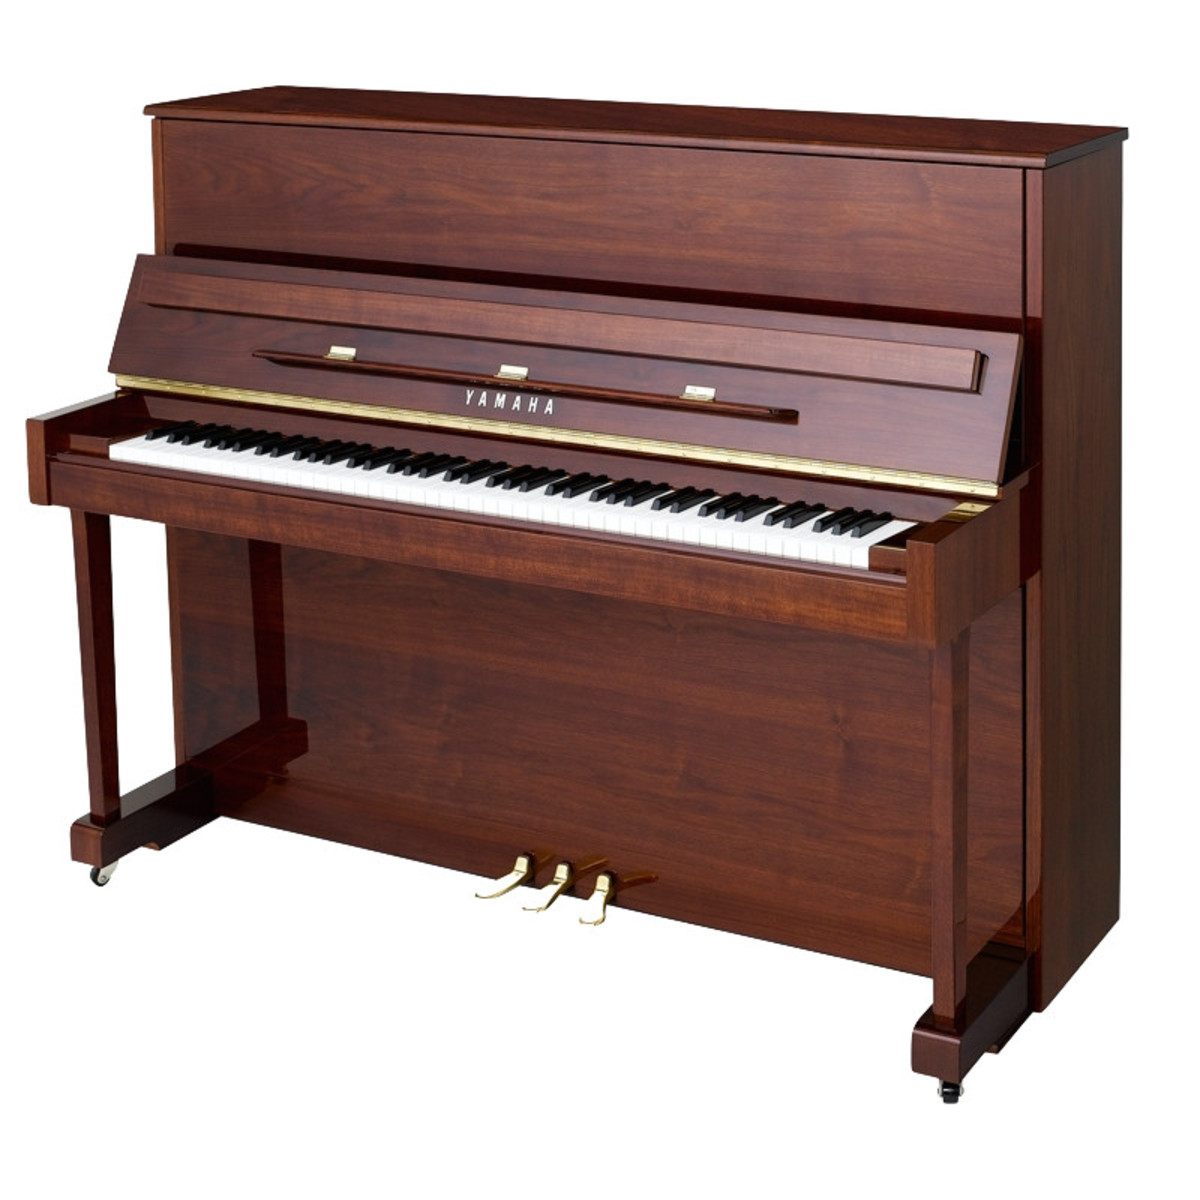 yamaha b3 upright acoustic piano simulated mahogany